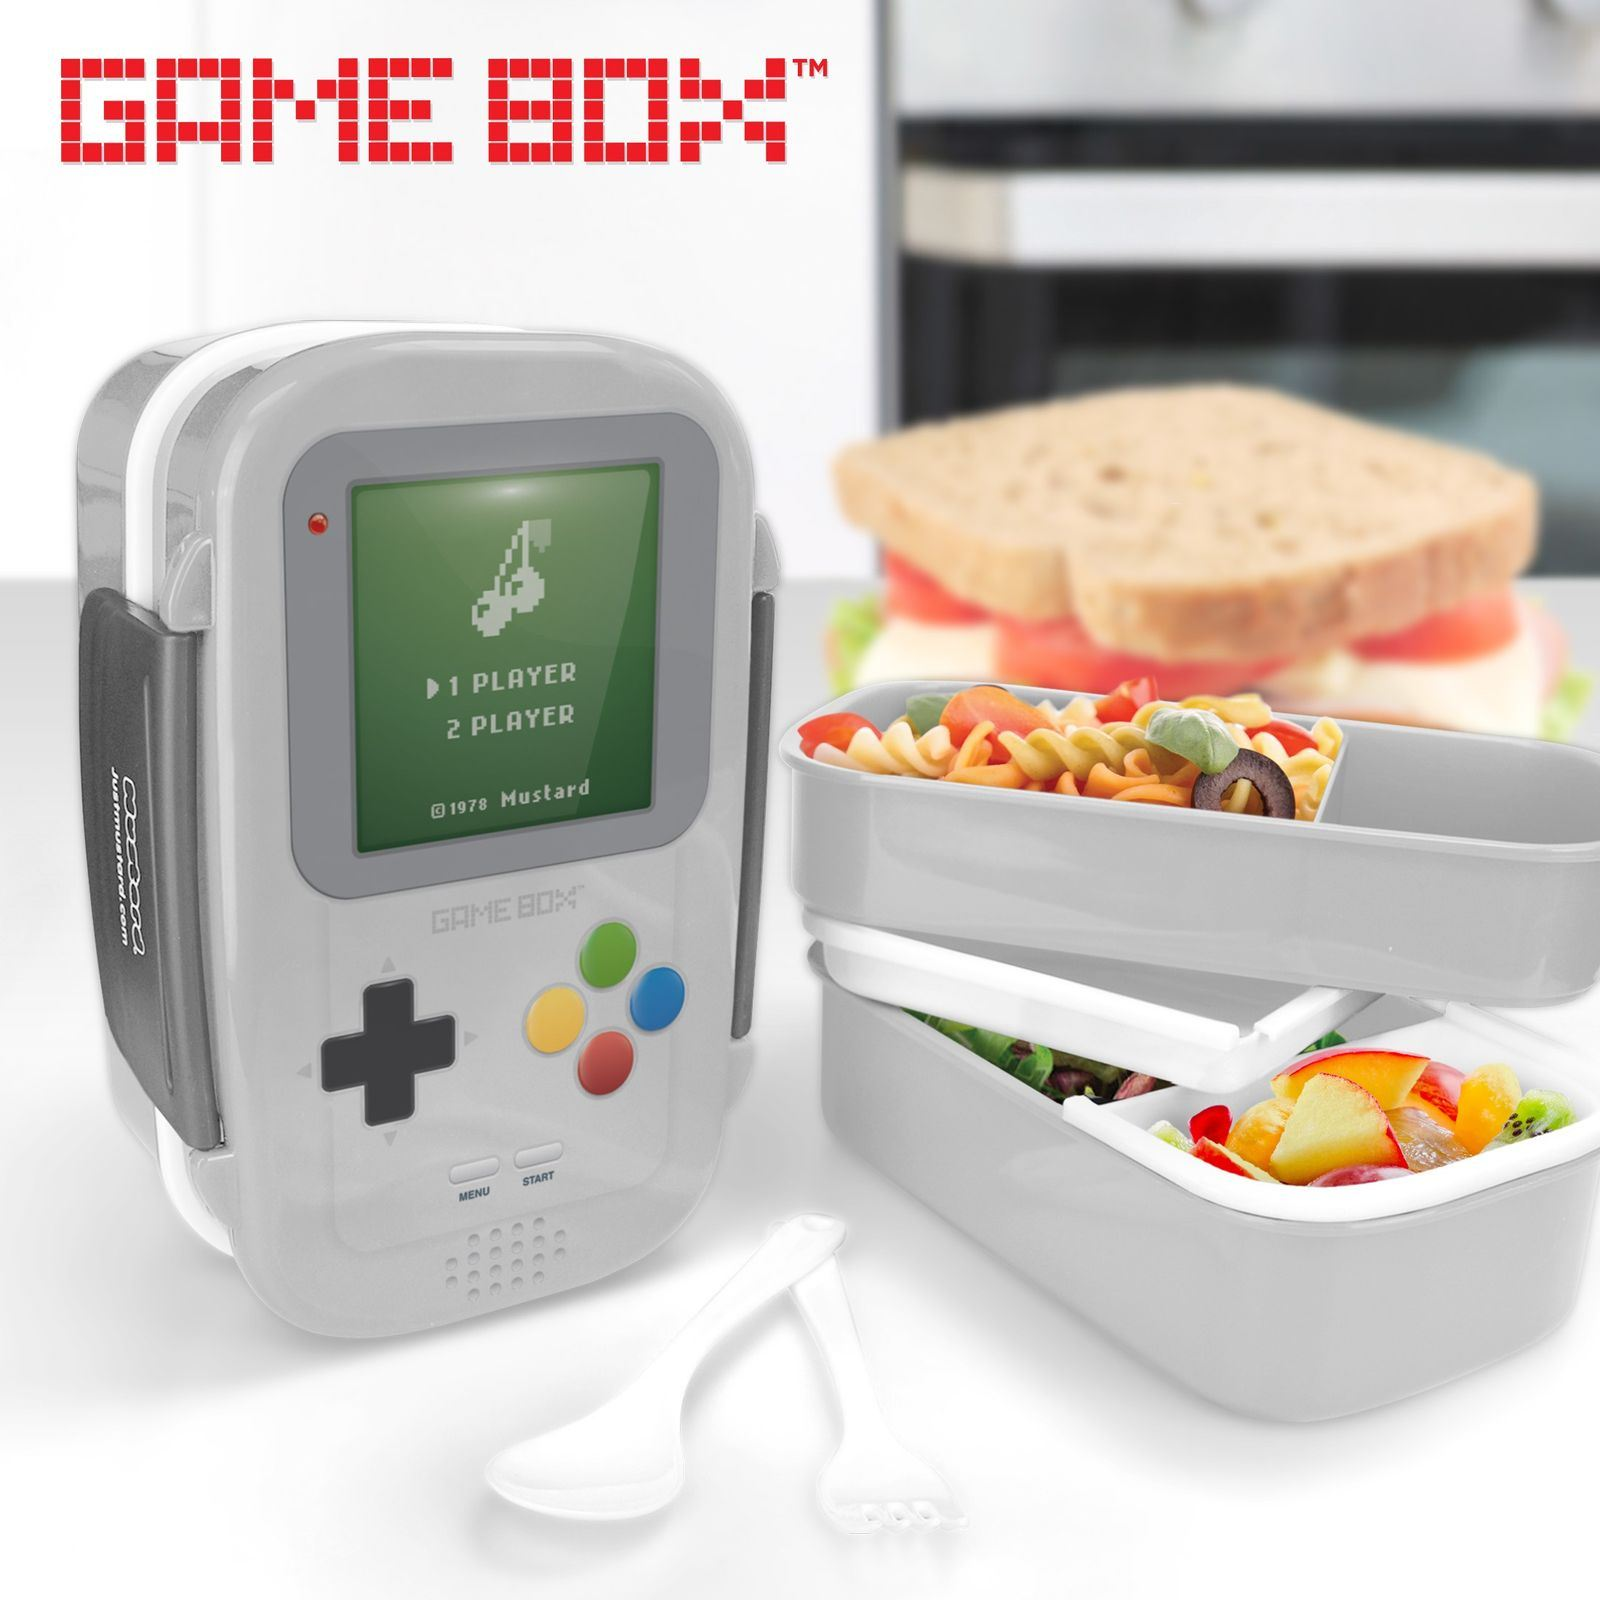 E_29122016195940_hop com gamebox lemonshop (3).jpg